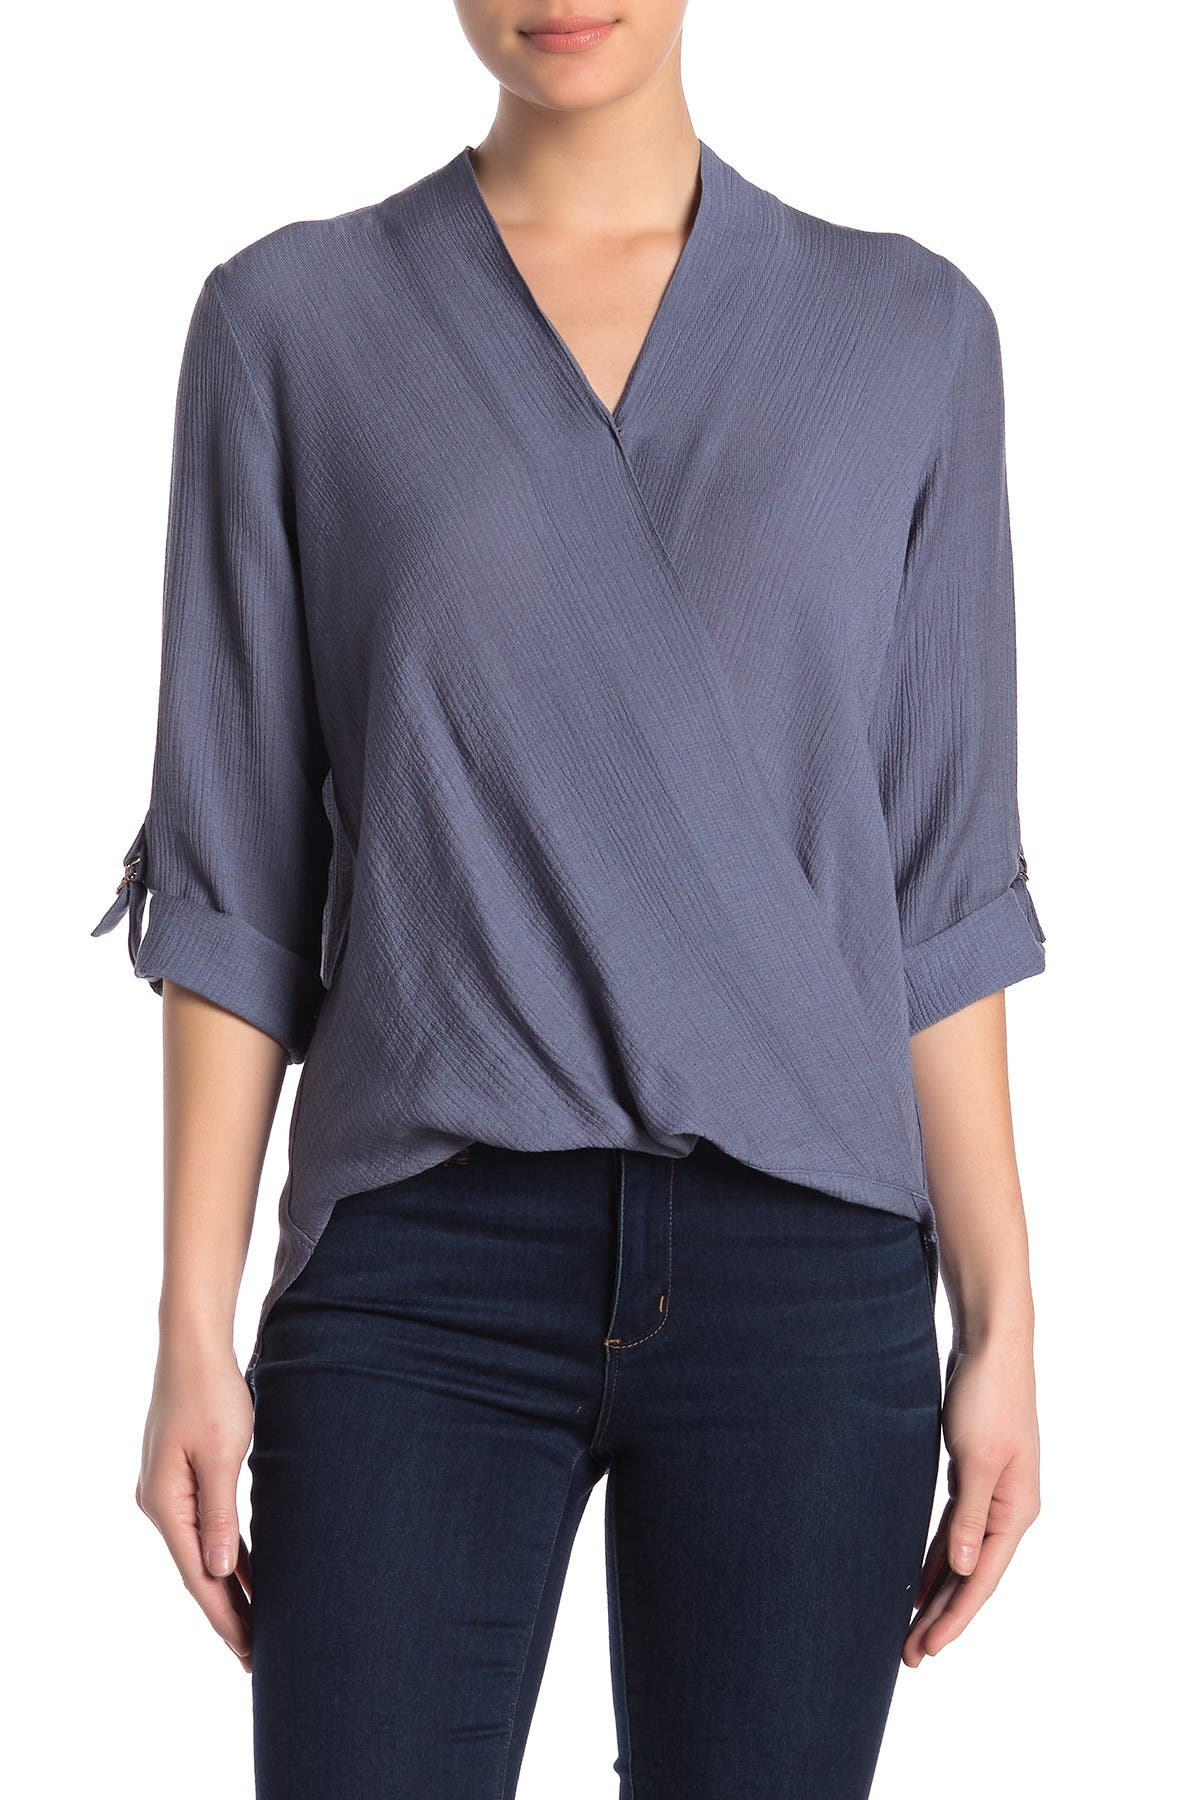 Image of MELLODAY Textured Wrap High/Low Blouse